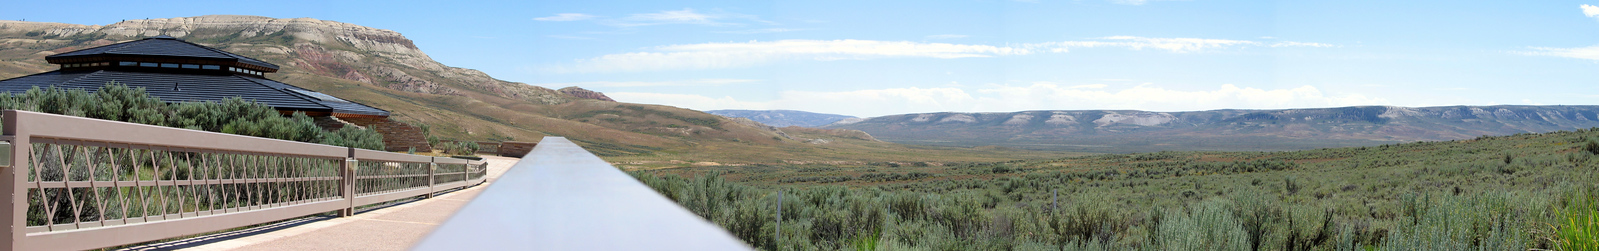 Fossil Butte, Wyoming, visitor center. Panoramic view.